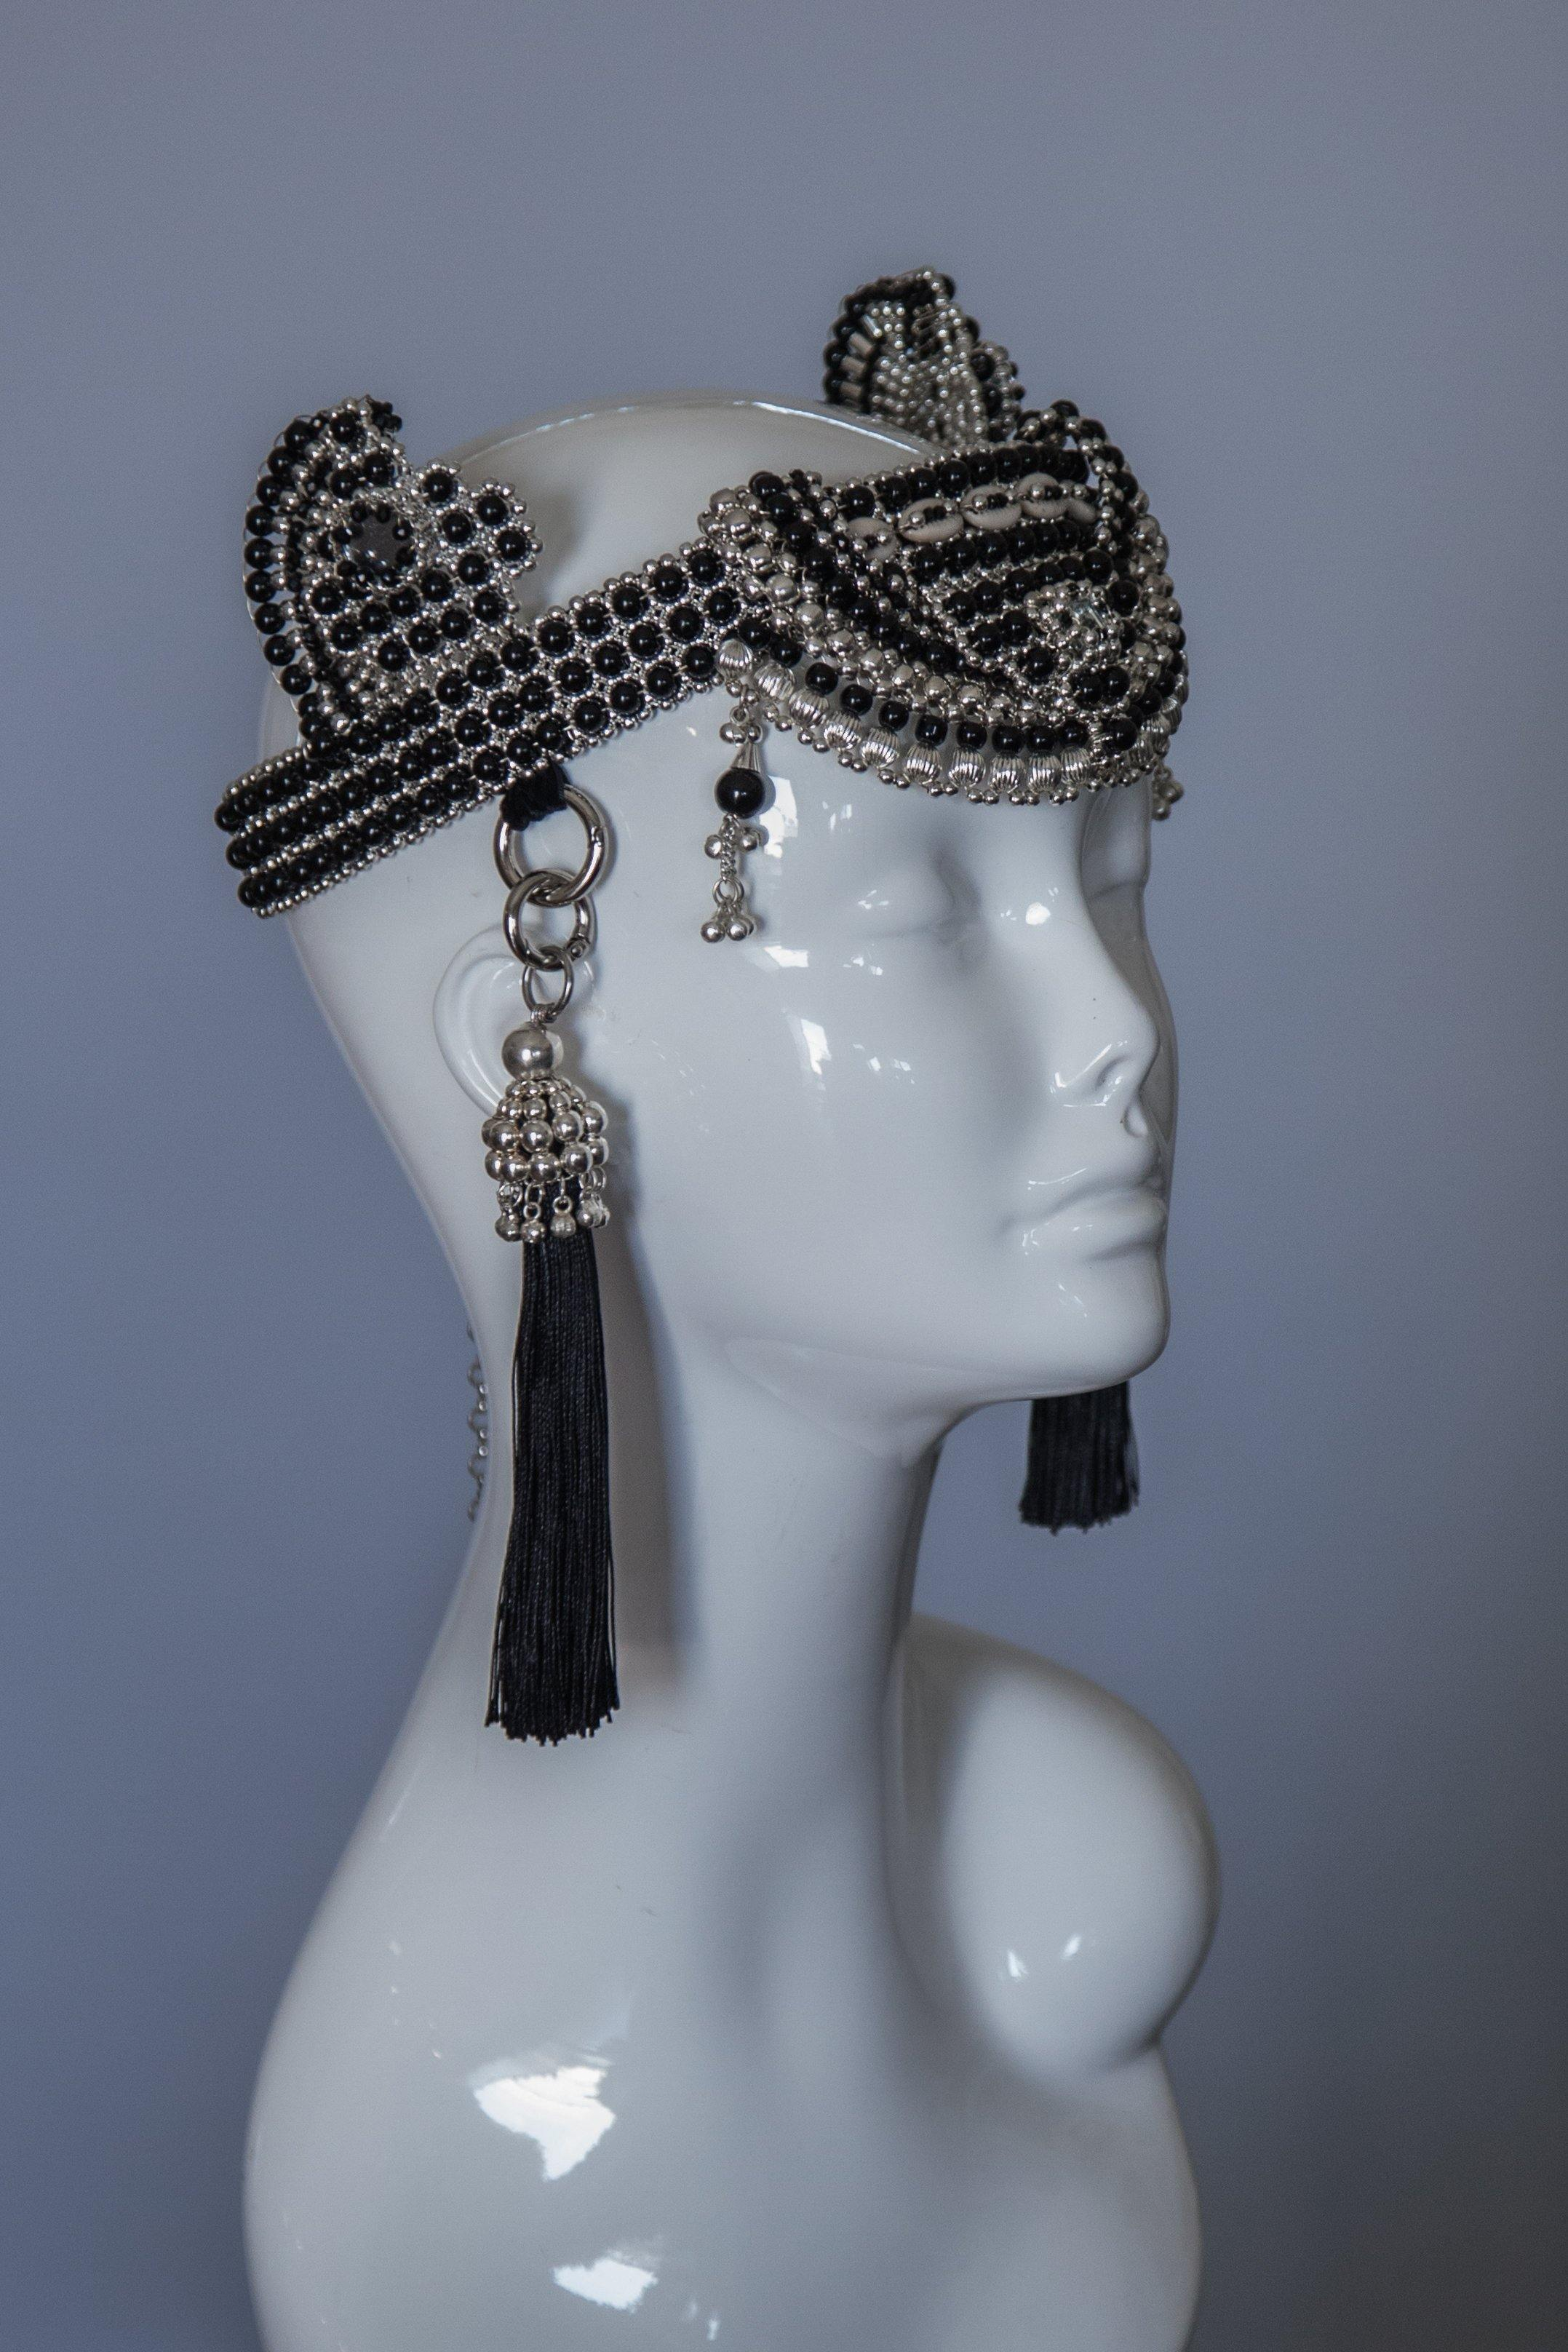 Anais Modular Crown with Tassels - Onyx